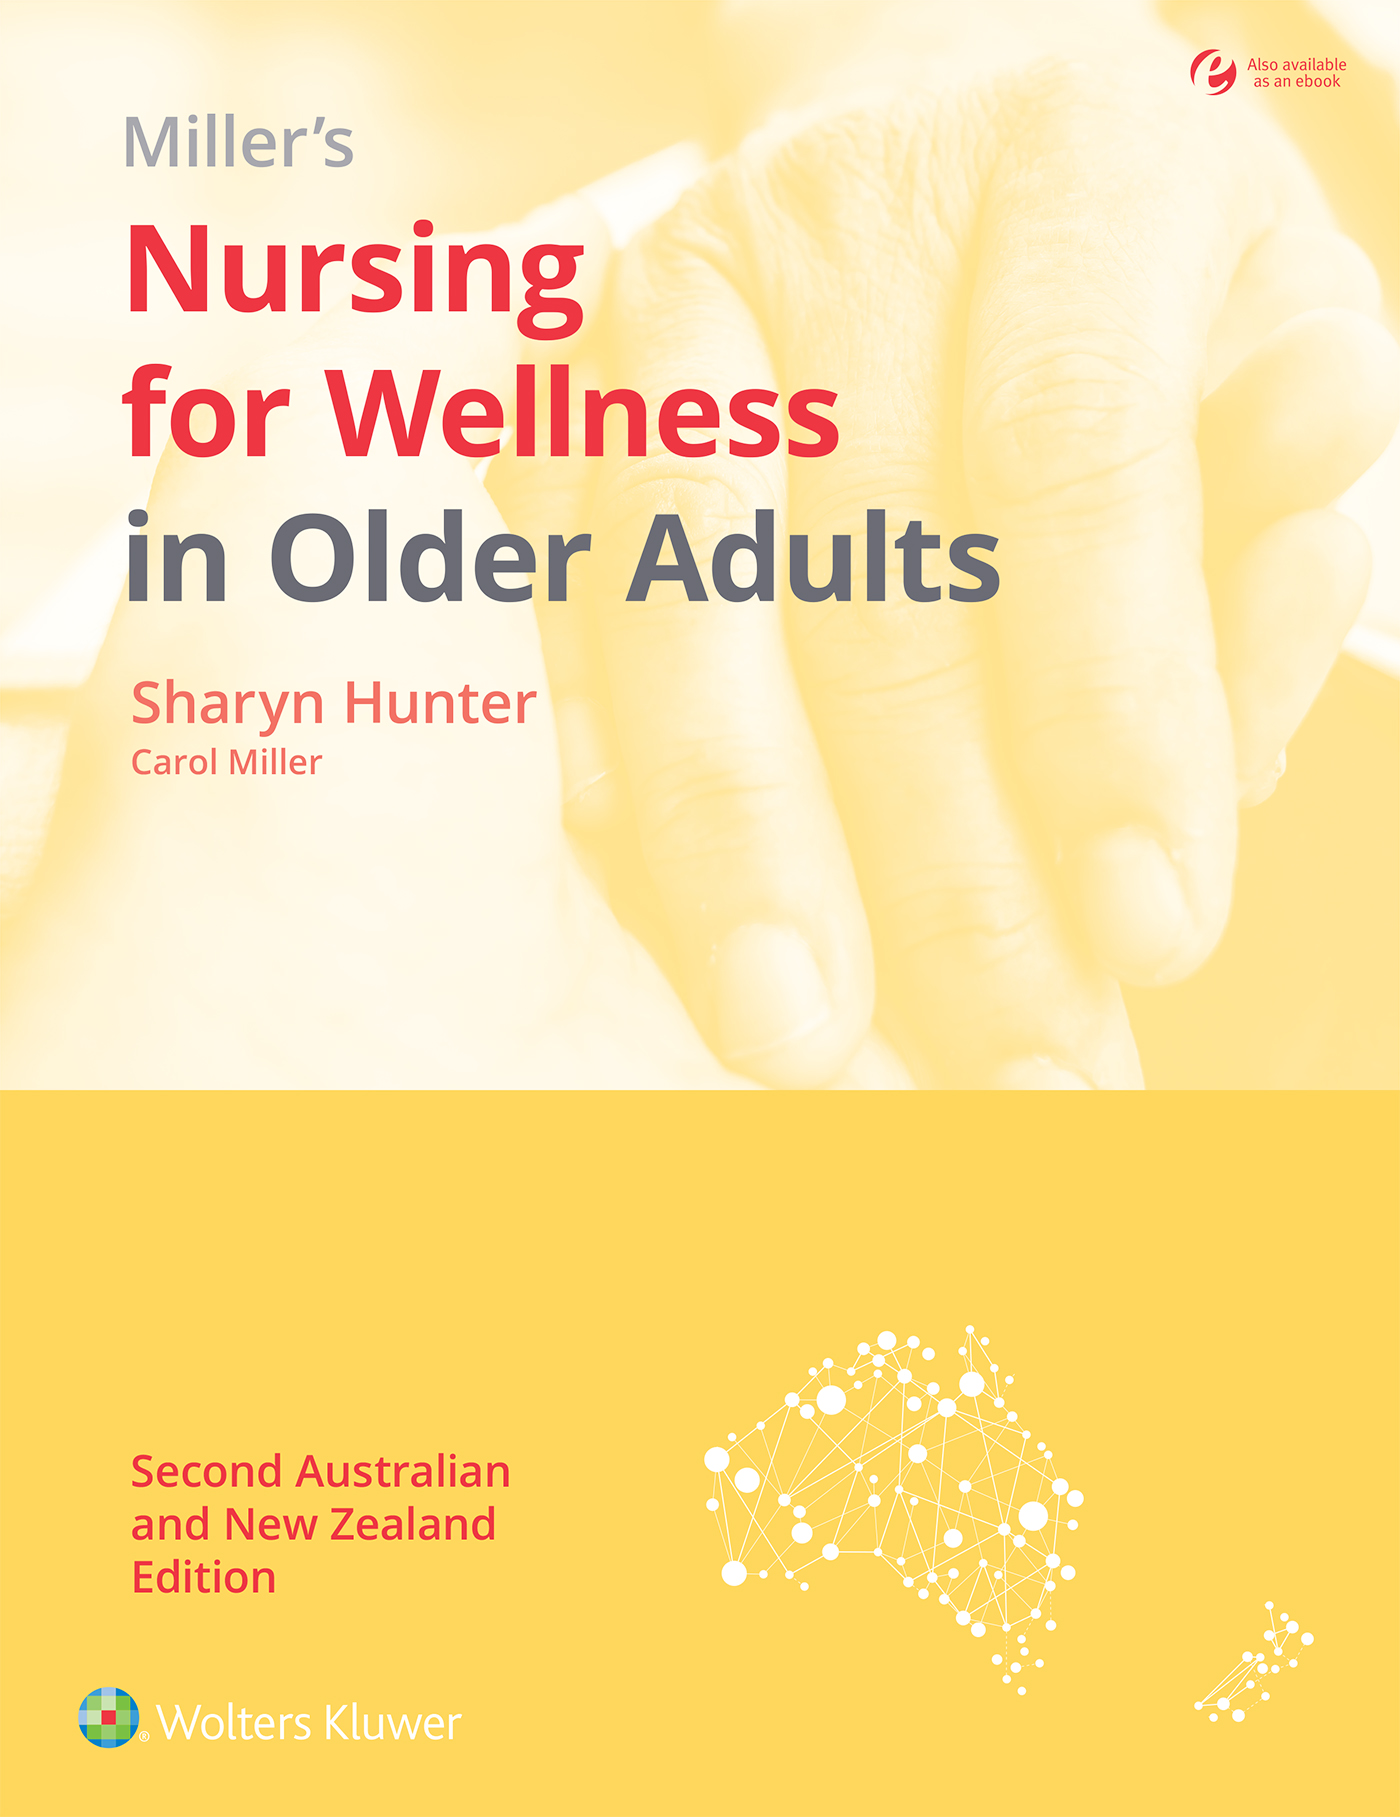 f2cb44fd bca2 4ab2 a9aa 1f1fa87902bb?max=350&quality=75&_mzcb=_1539772678023 nursing for wellness in older adults australia